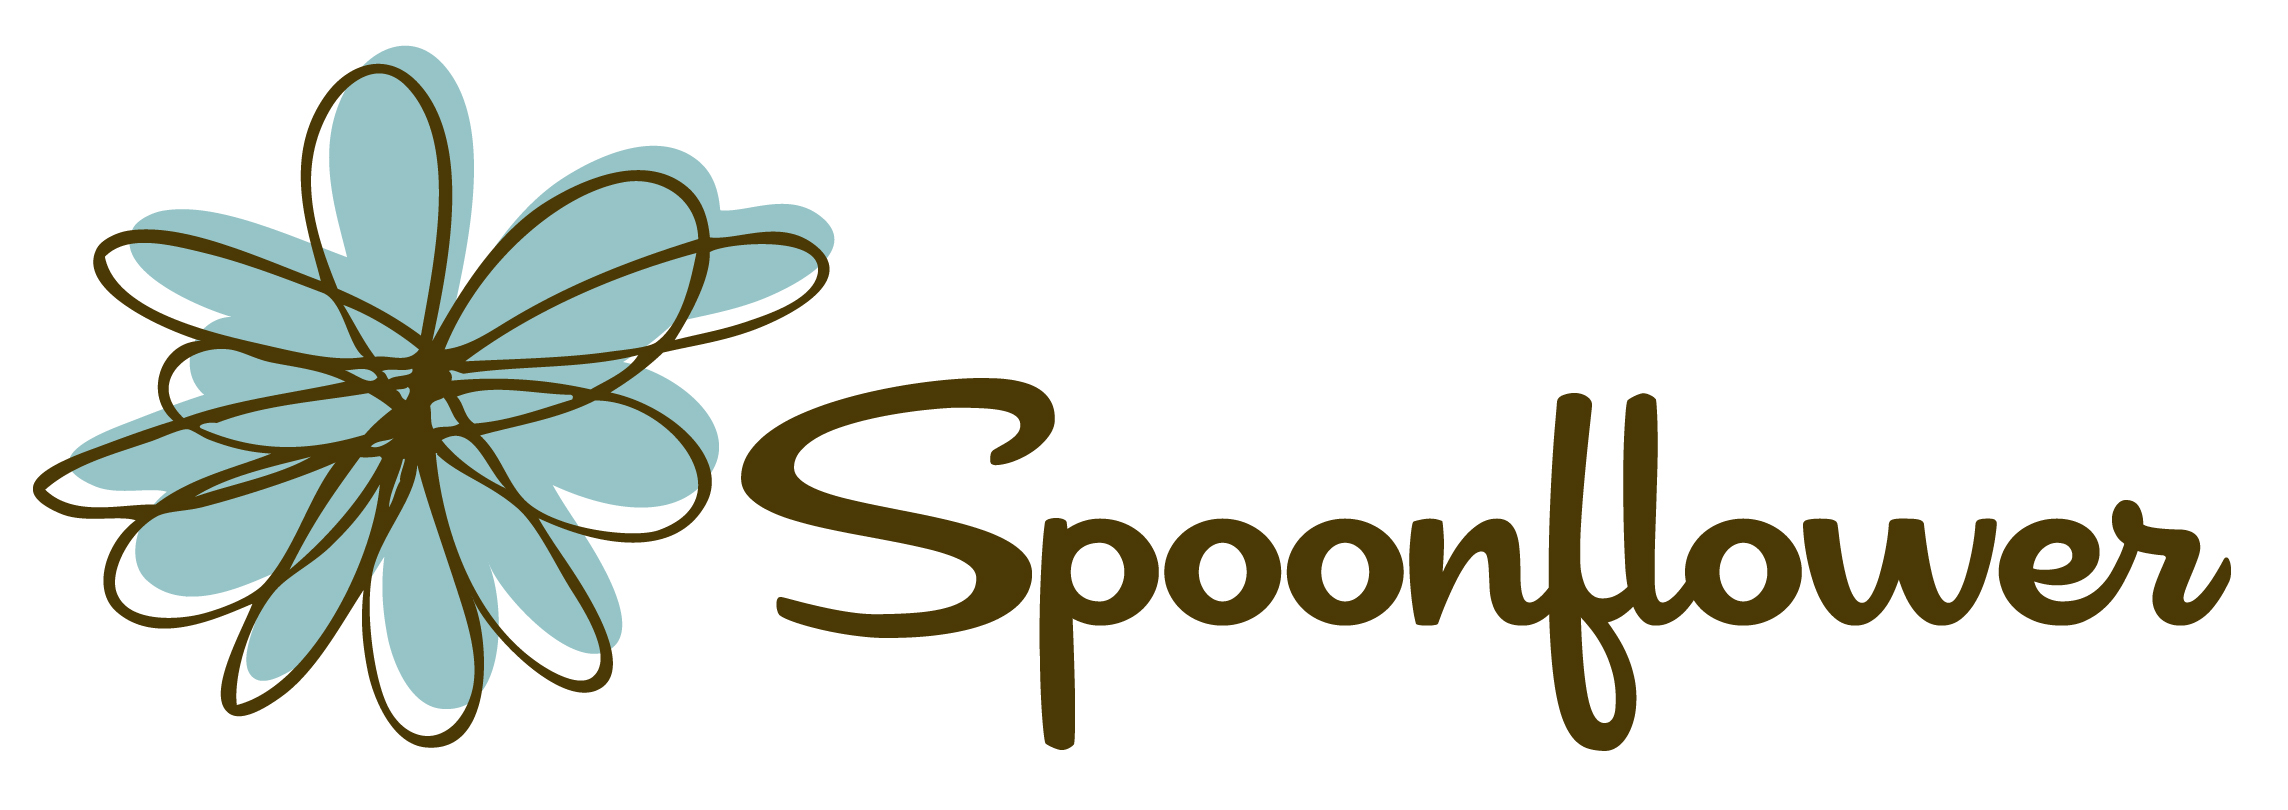 Spoonflower_Logo_Color.jpg